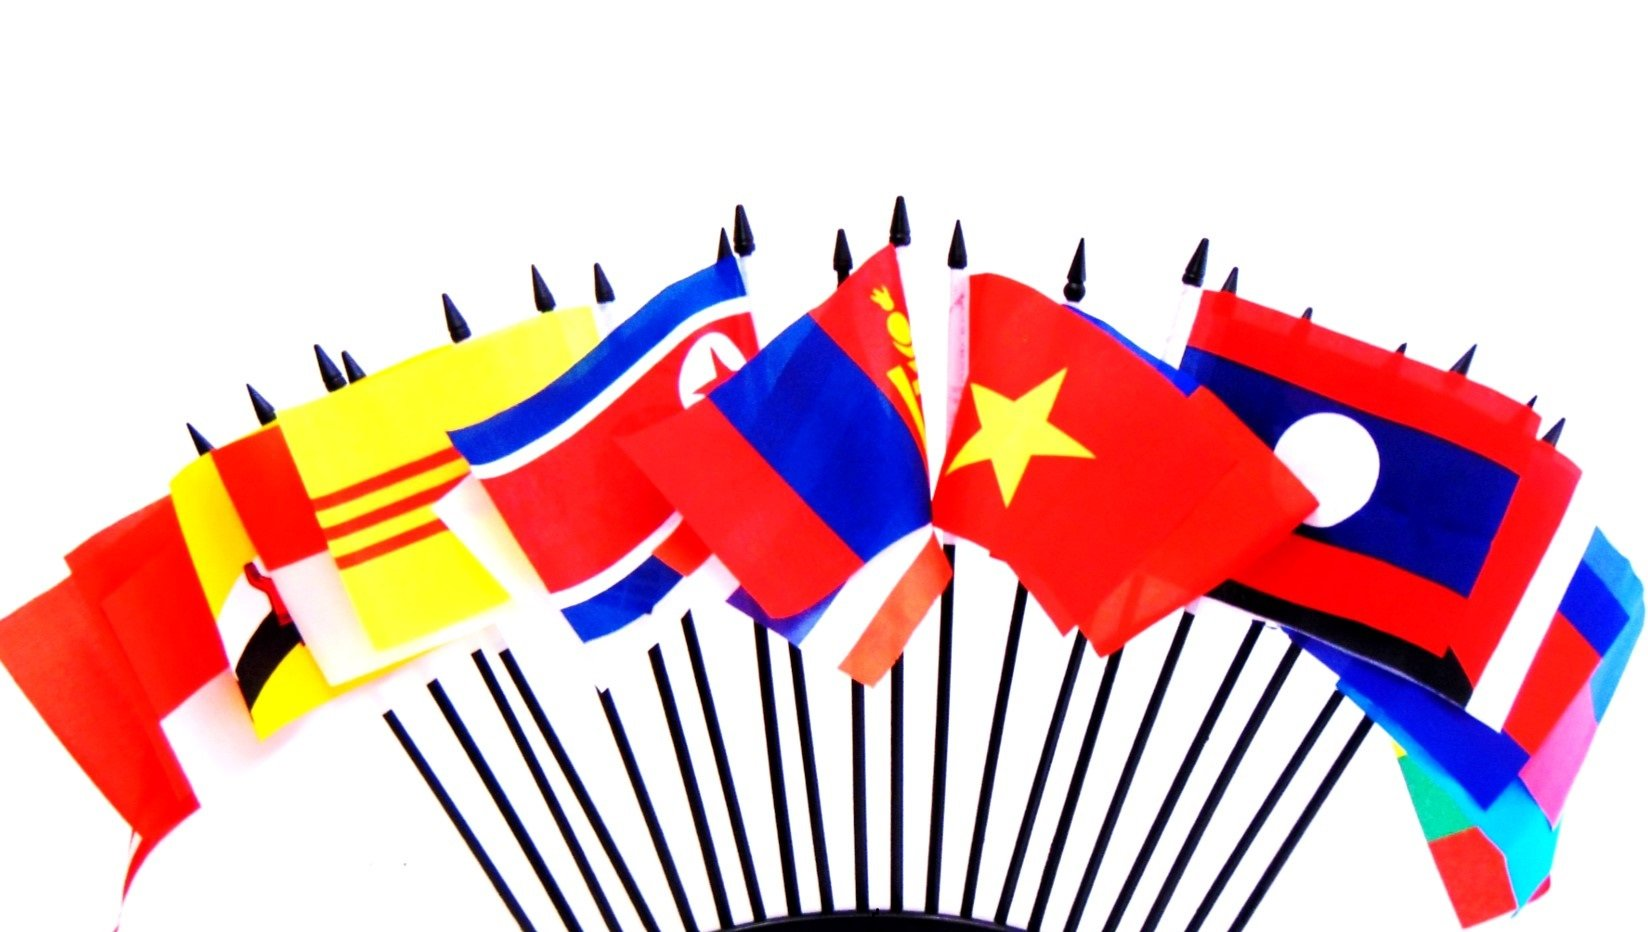 South East Asia World Flag SET-20 Polyester 4''x6'' Flags, One Flag for Each Country in South East Asia, 4x6 Miniature Desk & Table Flags, Small Mini Stick Flags